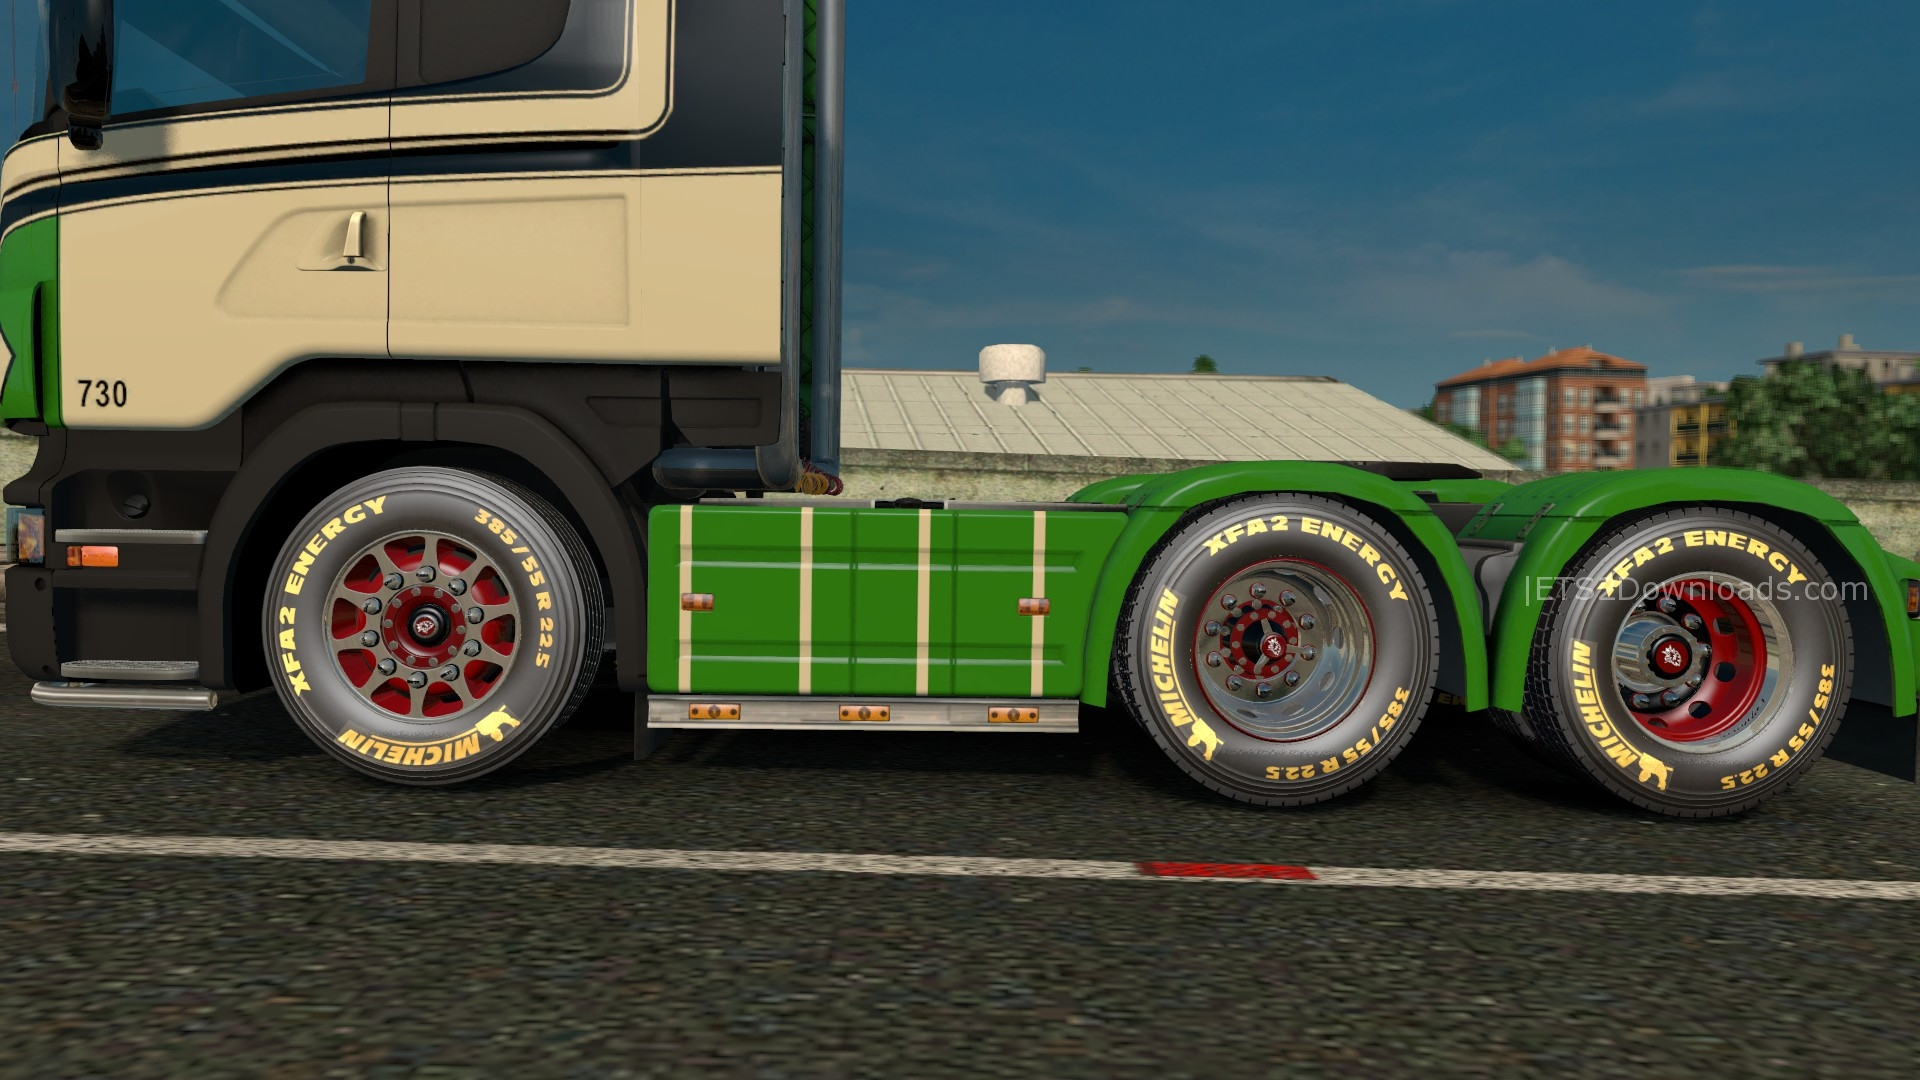 v8k-michelin-wheels-1